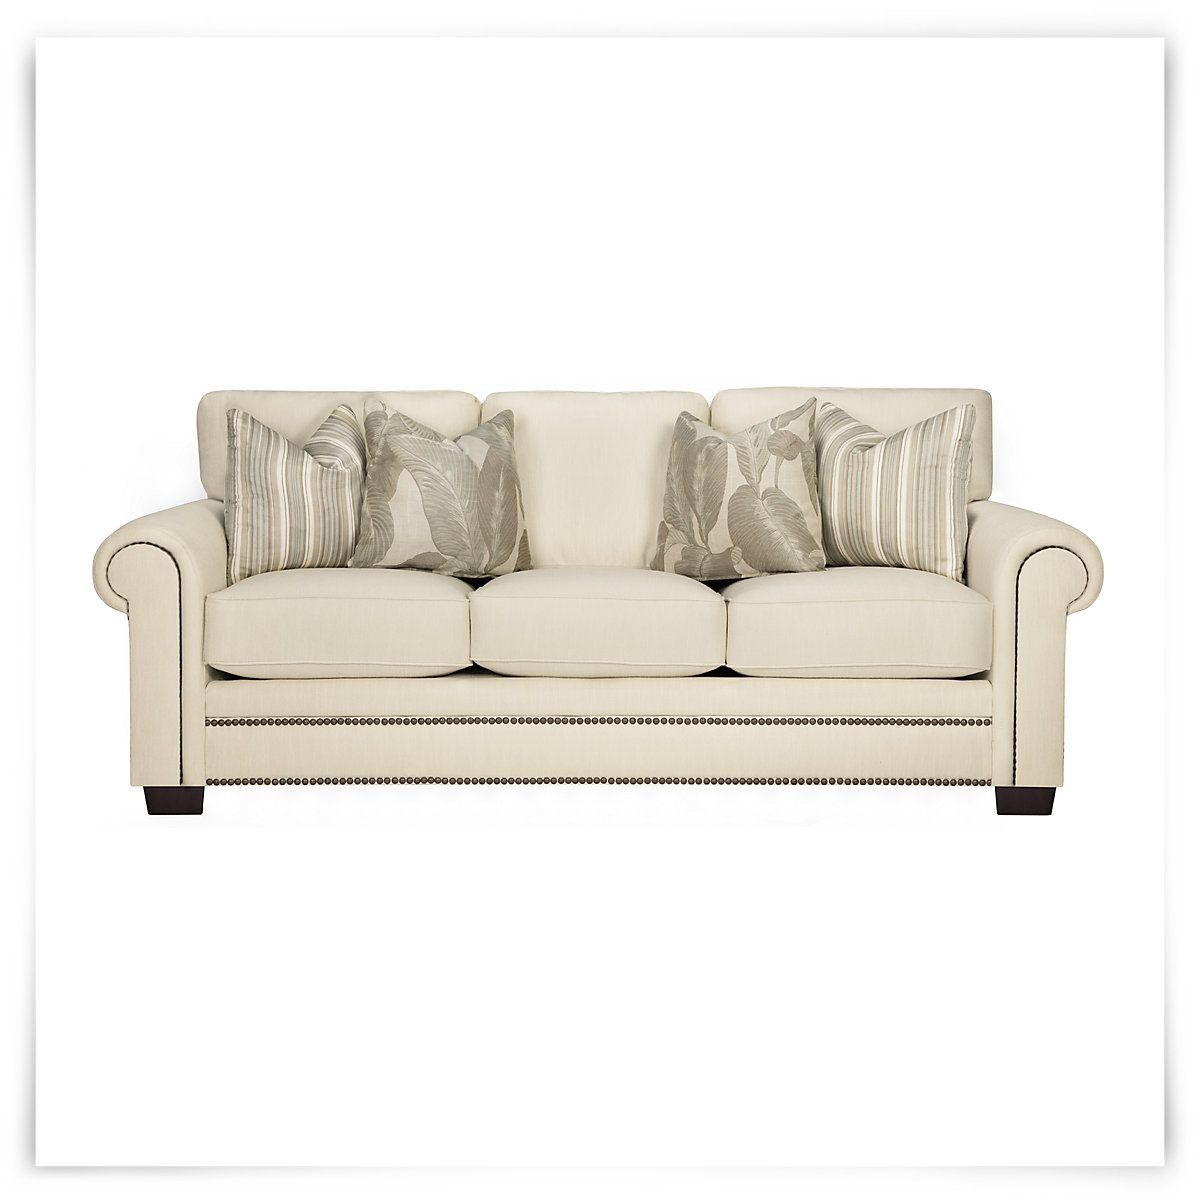 Erin White Fabric Sofa 699 95 White Fabric Sofa City Furniture White Fabrics